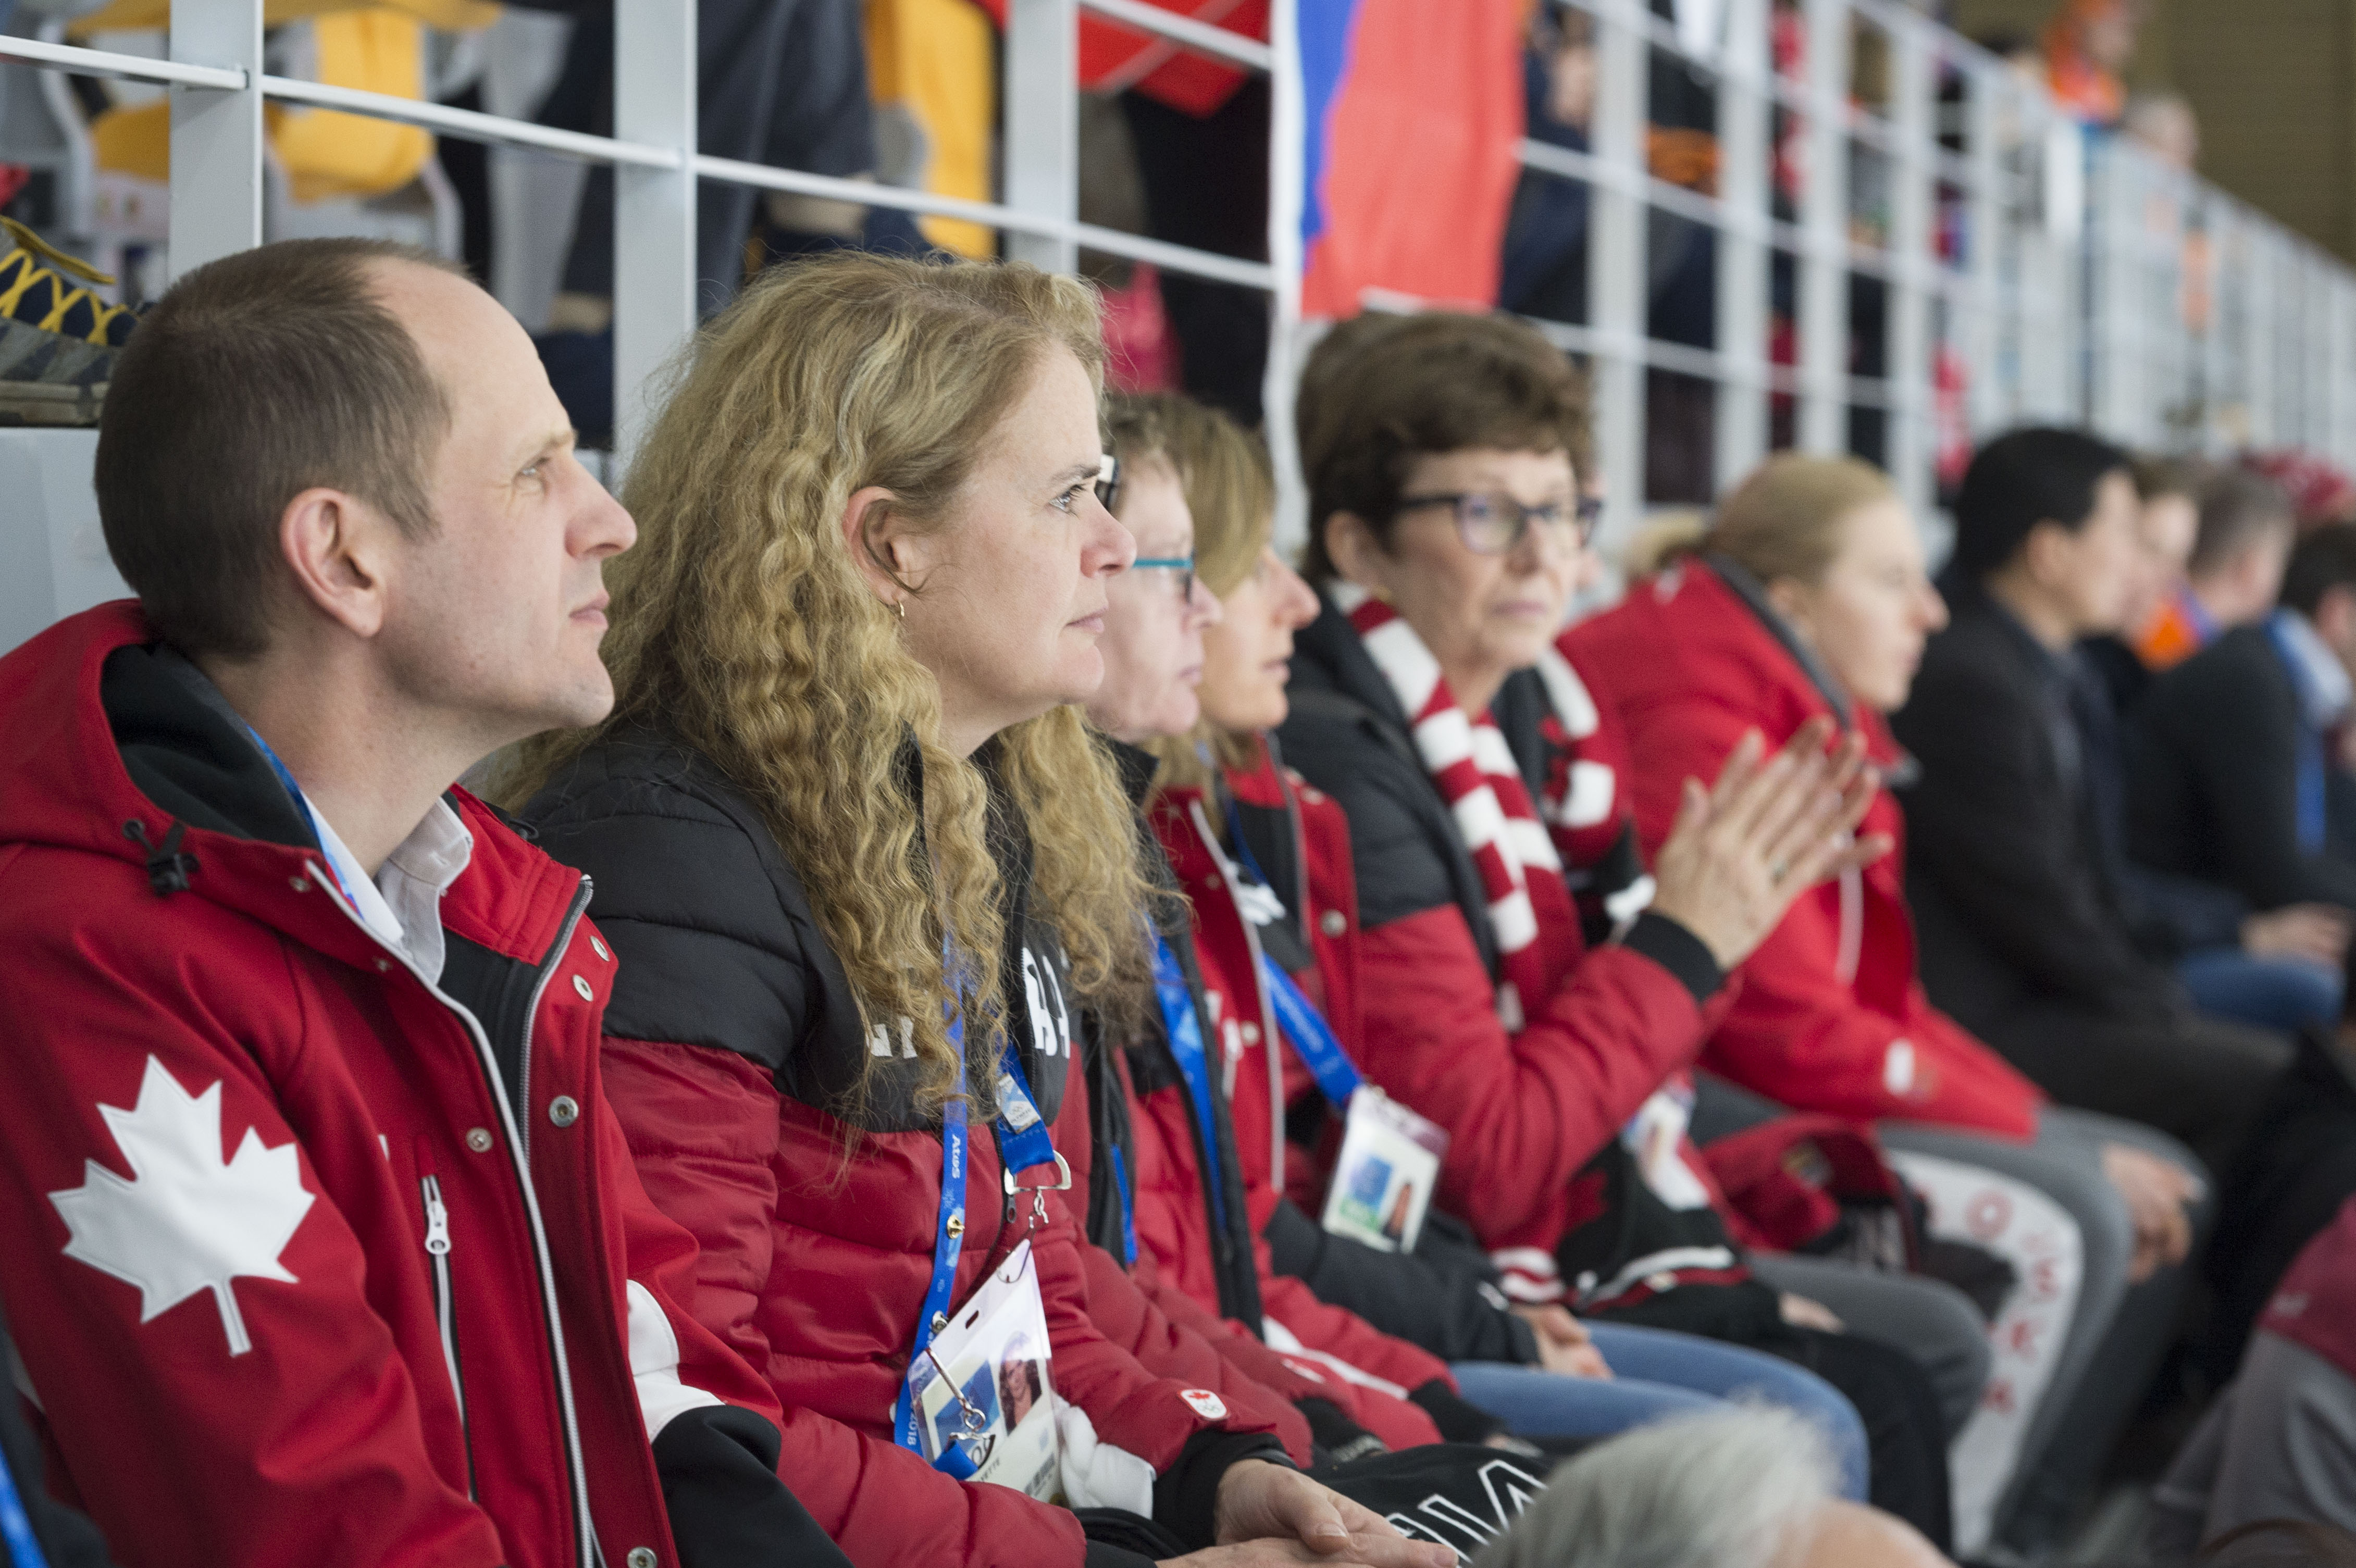 Her Excellency watched very attentively our Canadian athletes Isabelle Weidemann, Brianne Tutt and Ivanie Blondin.